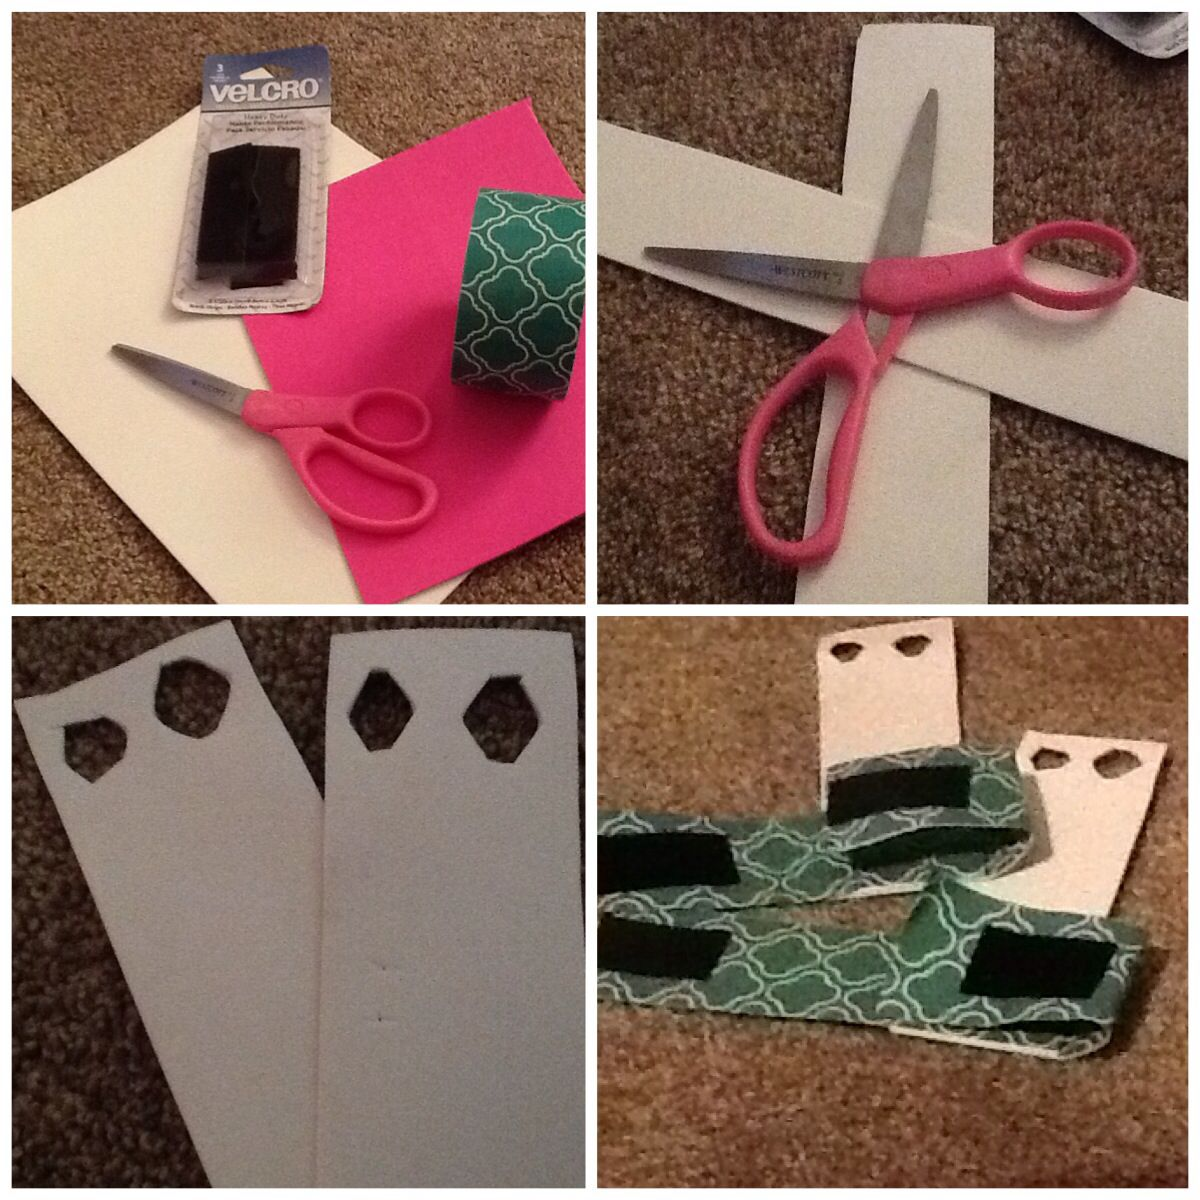 4ce0a2f5da82 DIY gymnastics grips What you need: 1.foam paper 2.scissors 3.velcro strips  4.duck tape Steps 1-4 1.cut foam paper in two strips 2.cut two holes at the  top ...